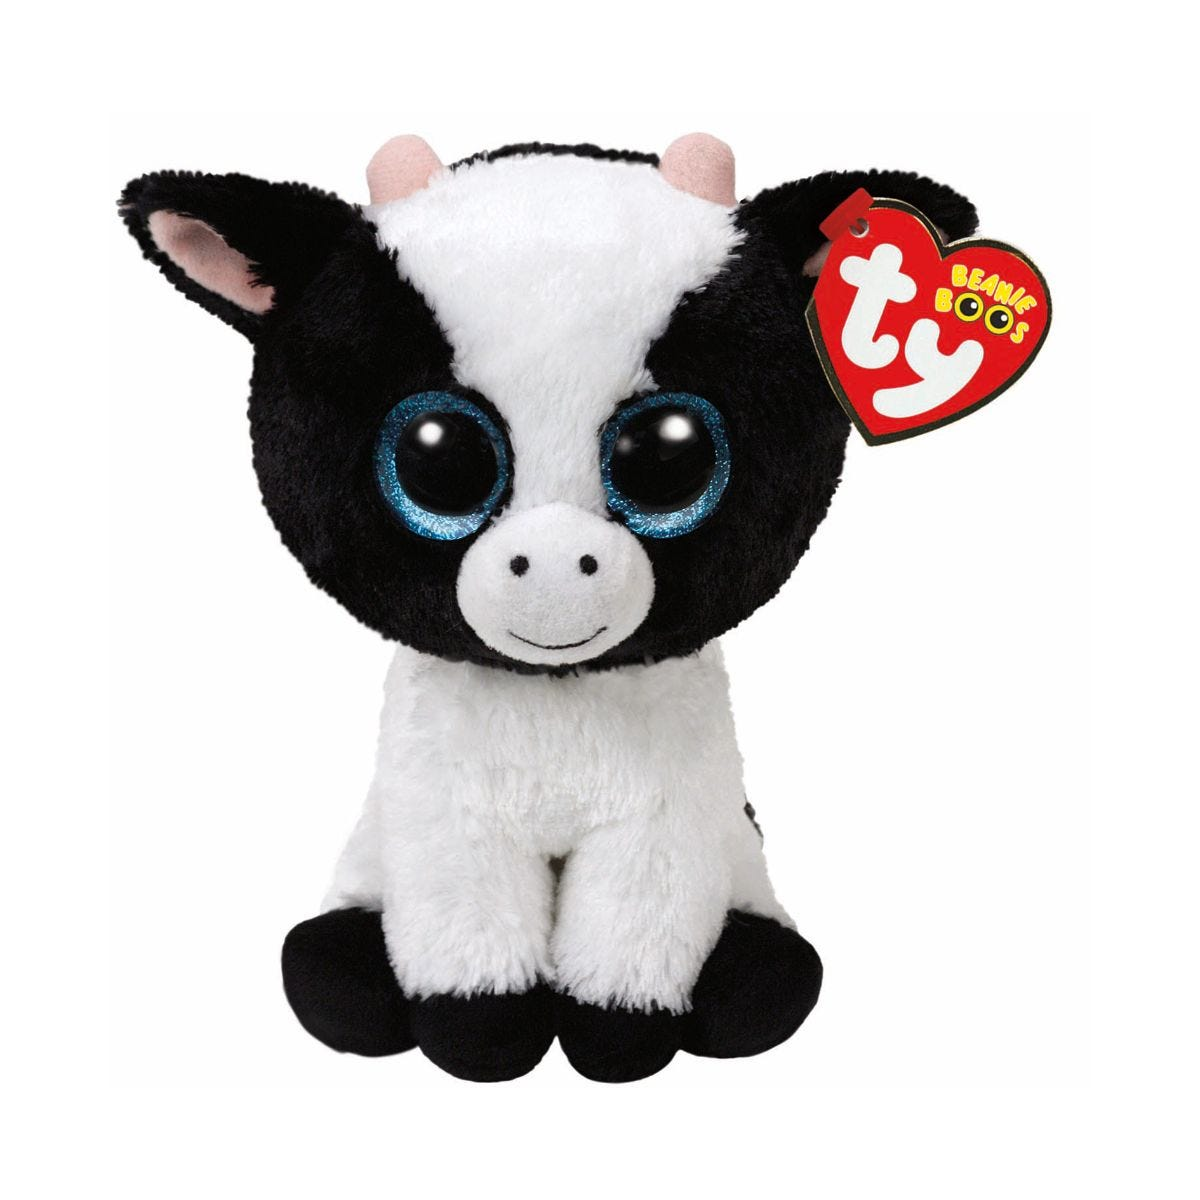 Image of Ty Butter Cow Beanie Boo Cuddly Toy